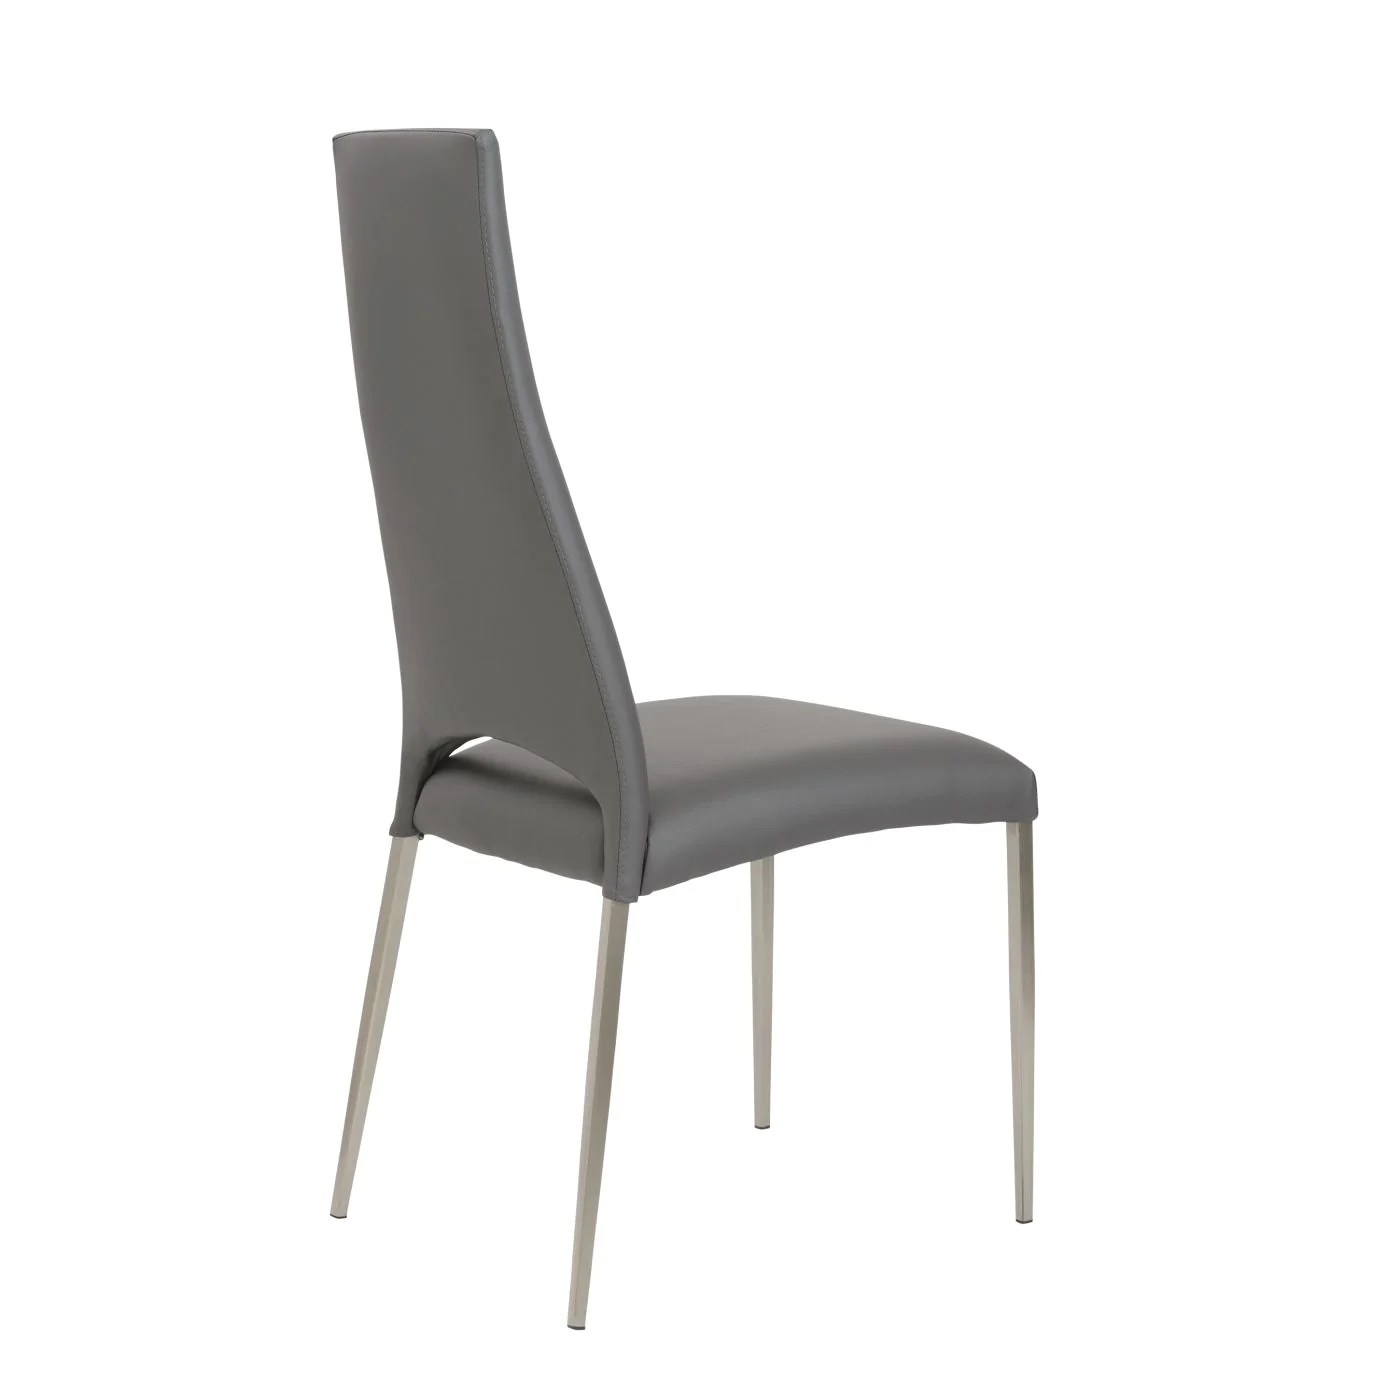 dining chairs with stainless steel legs twin bed chair euro style tara in gray leatherette